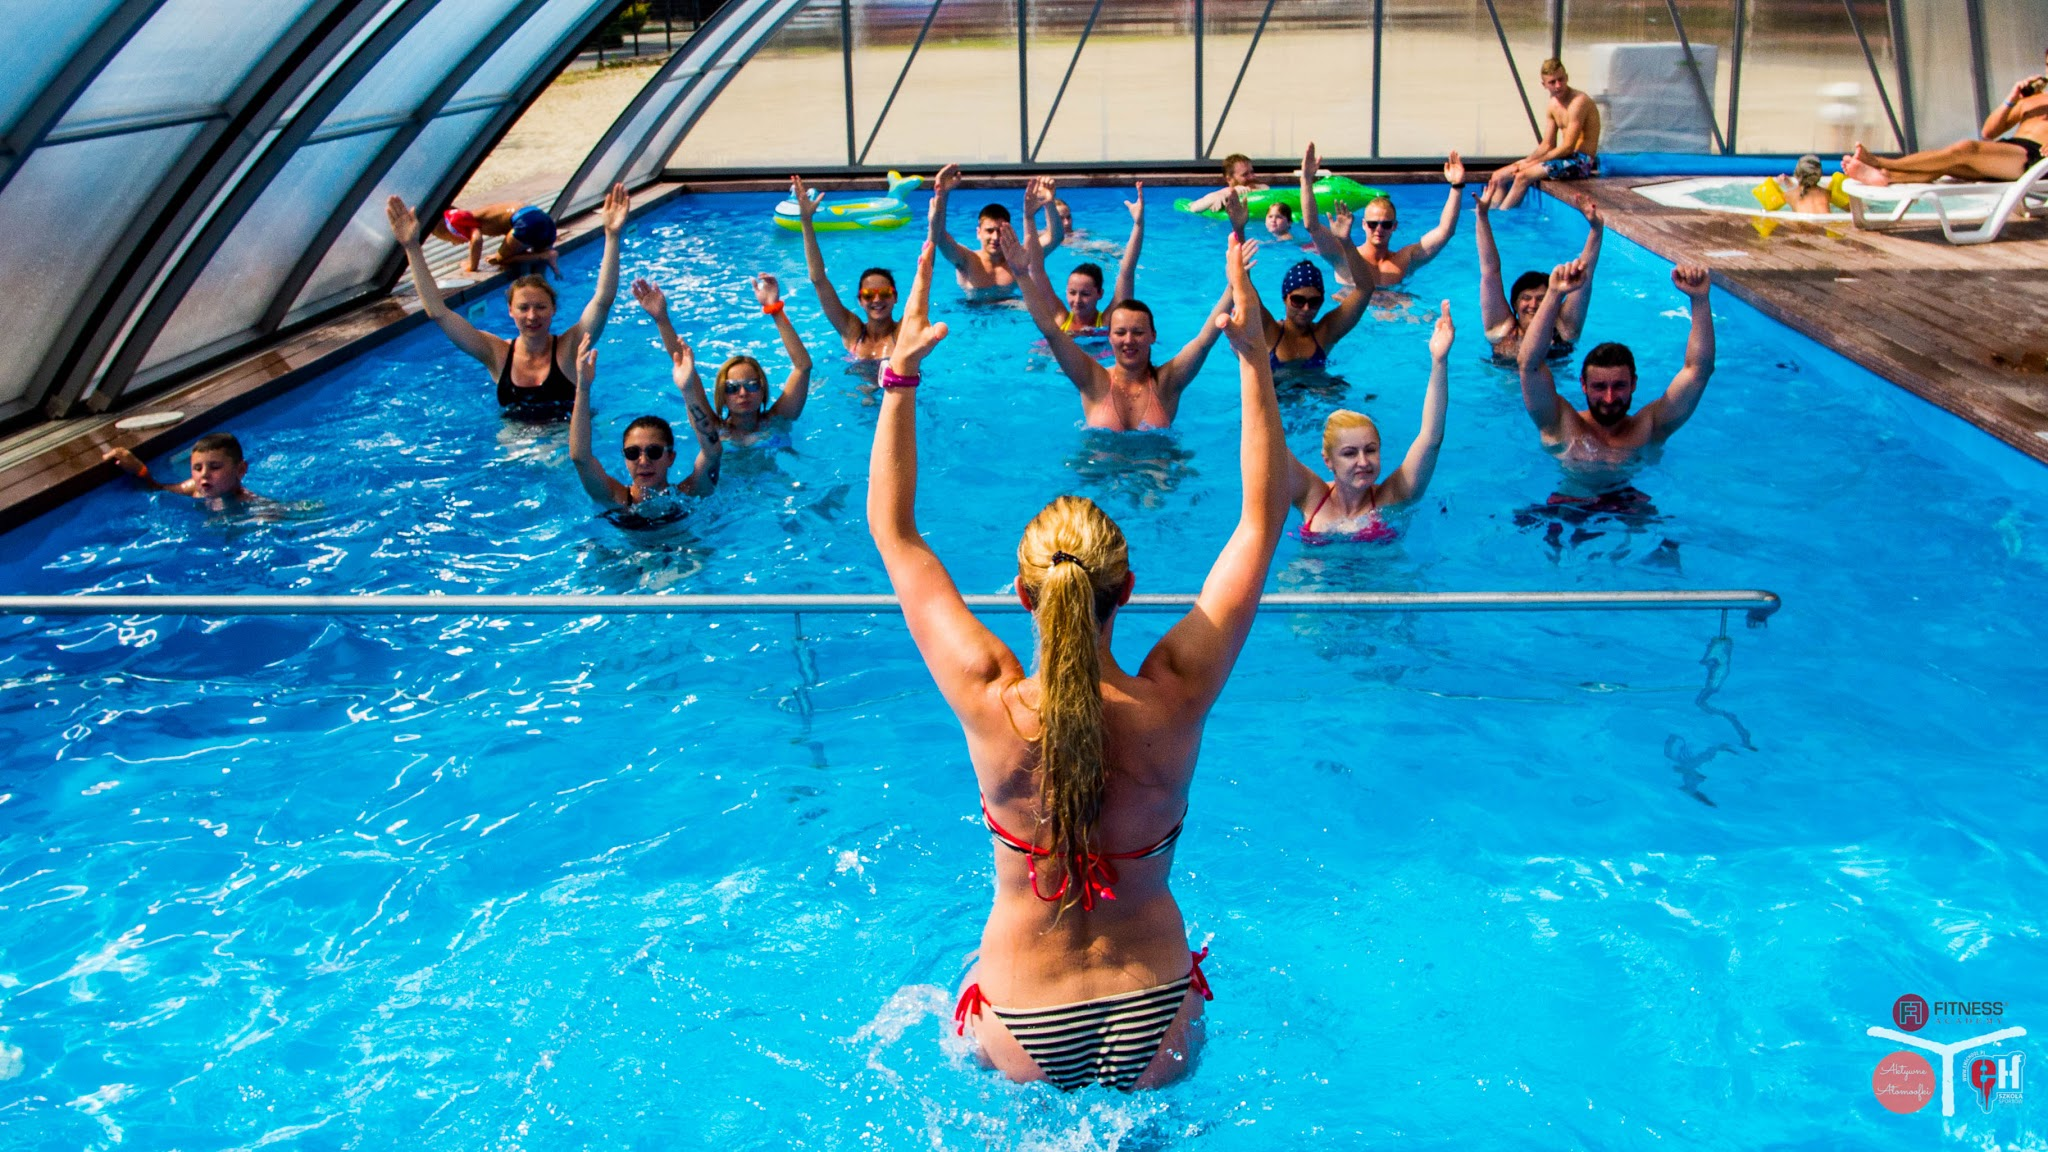 Fitness%20Camp%20Januszkowice%20(183%20of%20411)